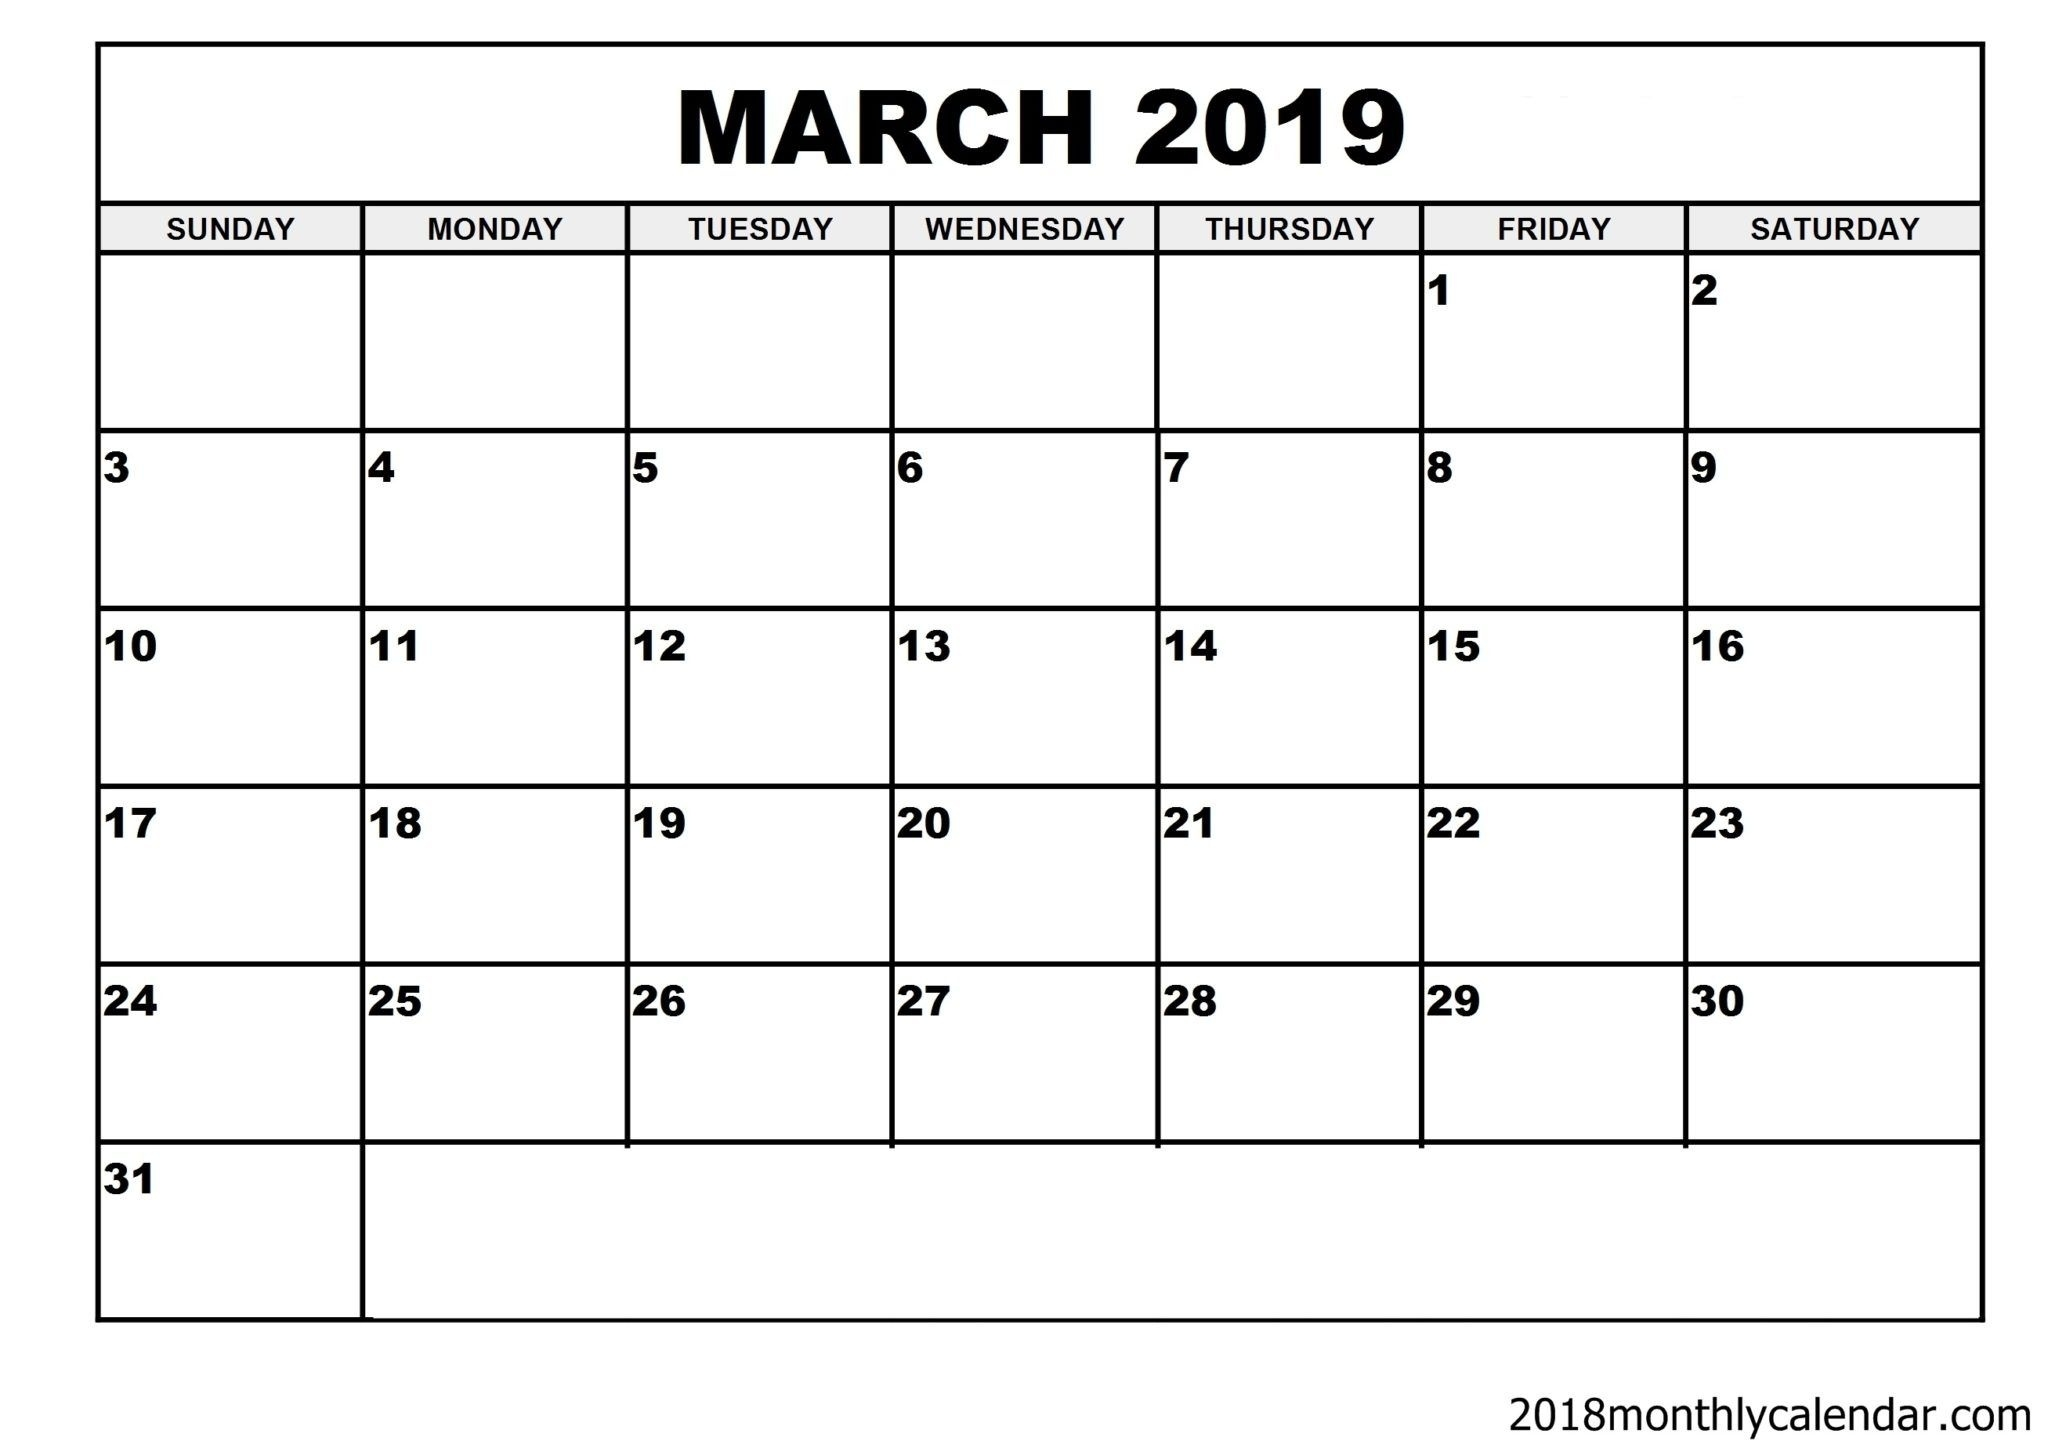 Download March 2019 Calendar – Blank Template - Editable Calendar_Calendar Blank Templates Free